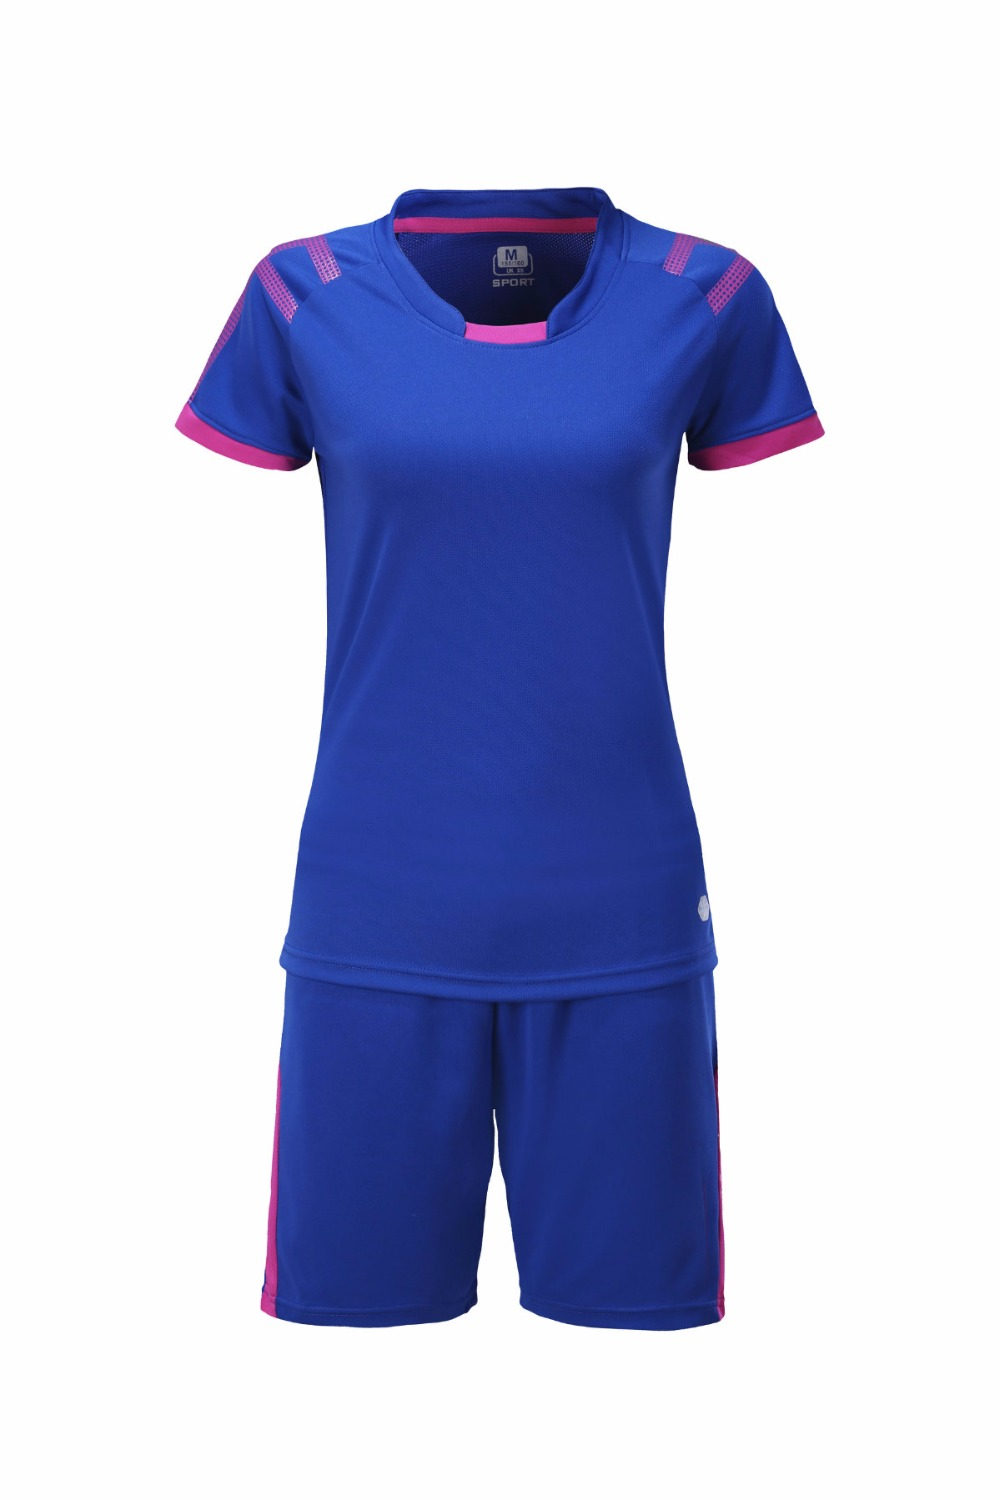 Womens short sleeve sports training kit, football suit, DIY team custom logo printing, breathable womens football jerseys, wom